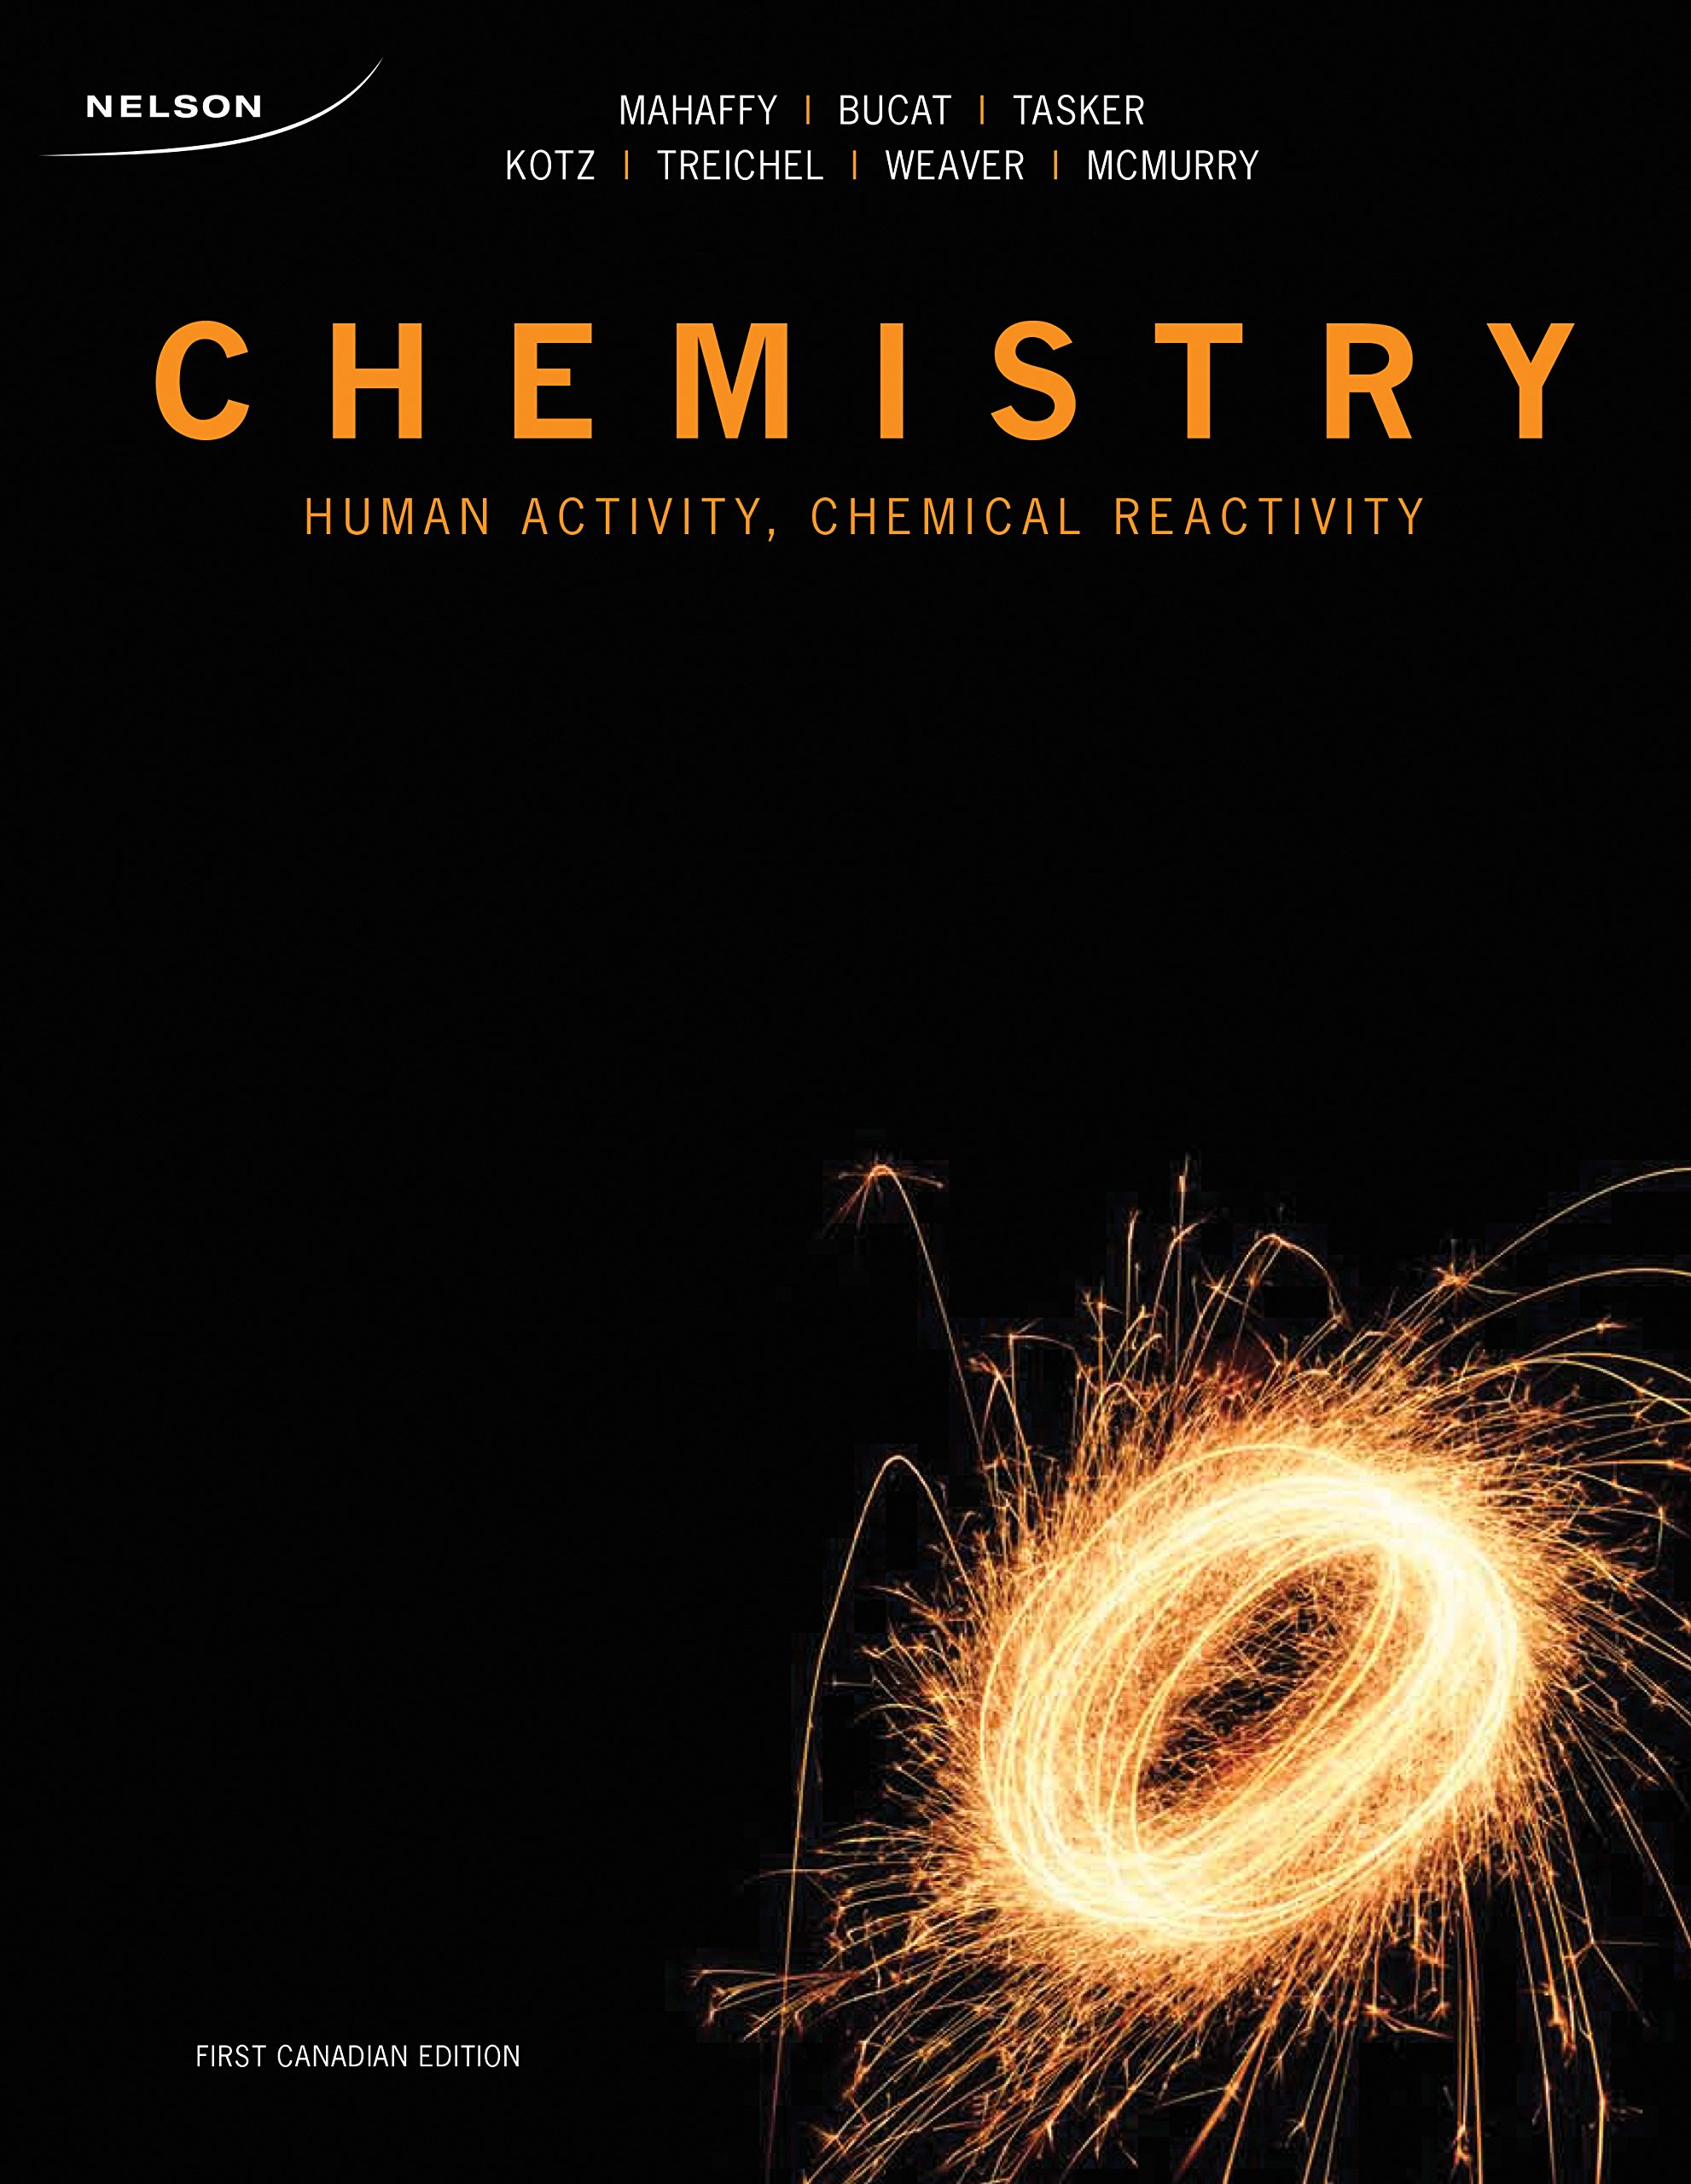 What is human chemistry